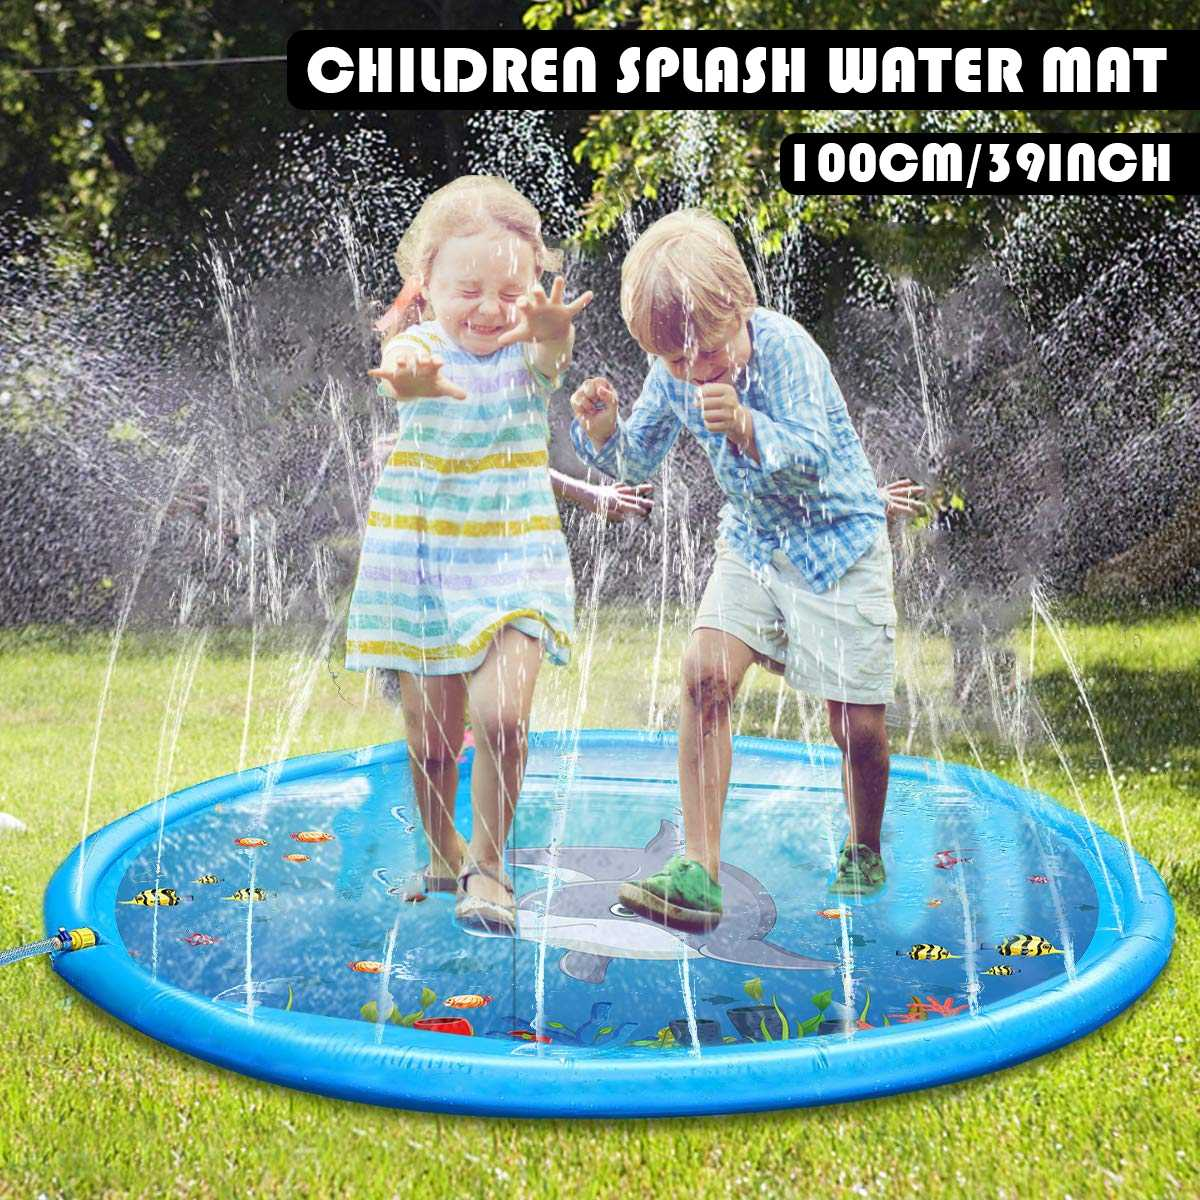 Hot Summer Children's Baby Play Water Mat Games Beach Pad Lawn Inflatable Spray Water Cushion Toys Outdoor Tub